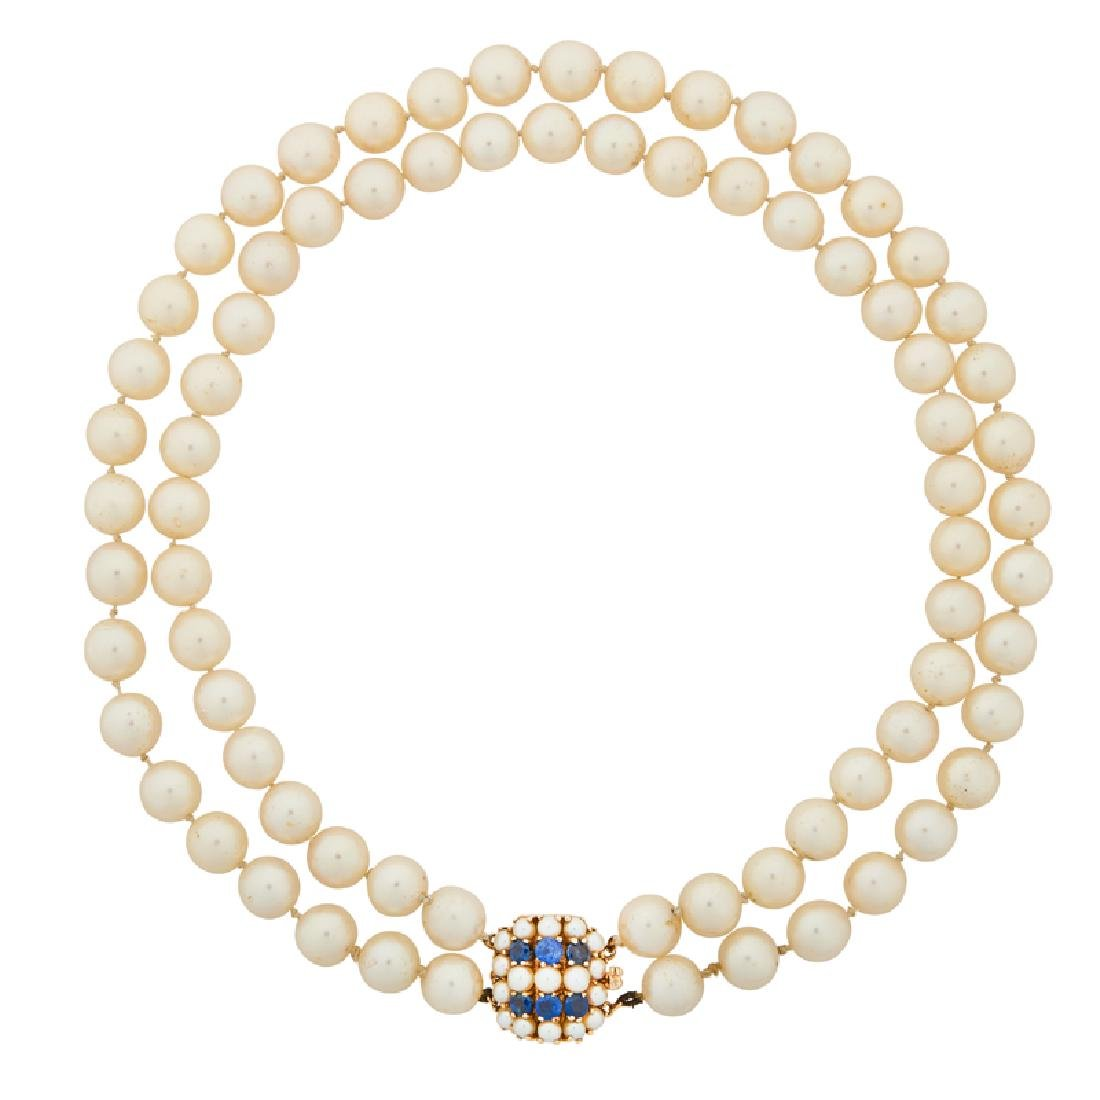 AKOYA PEARL, SAPPHIRE & YELLOW GOLD NECKLACE